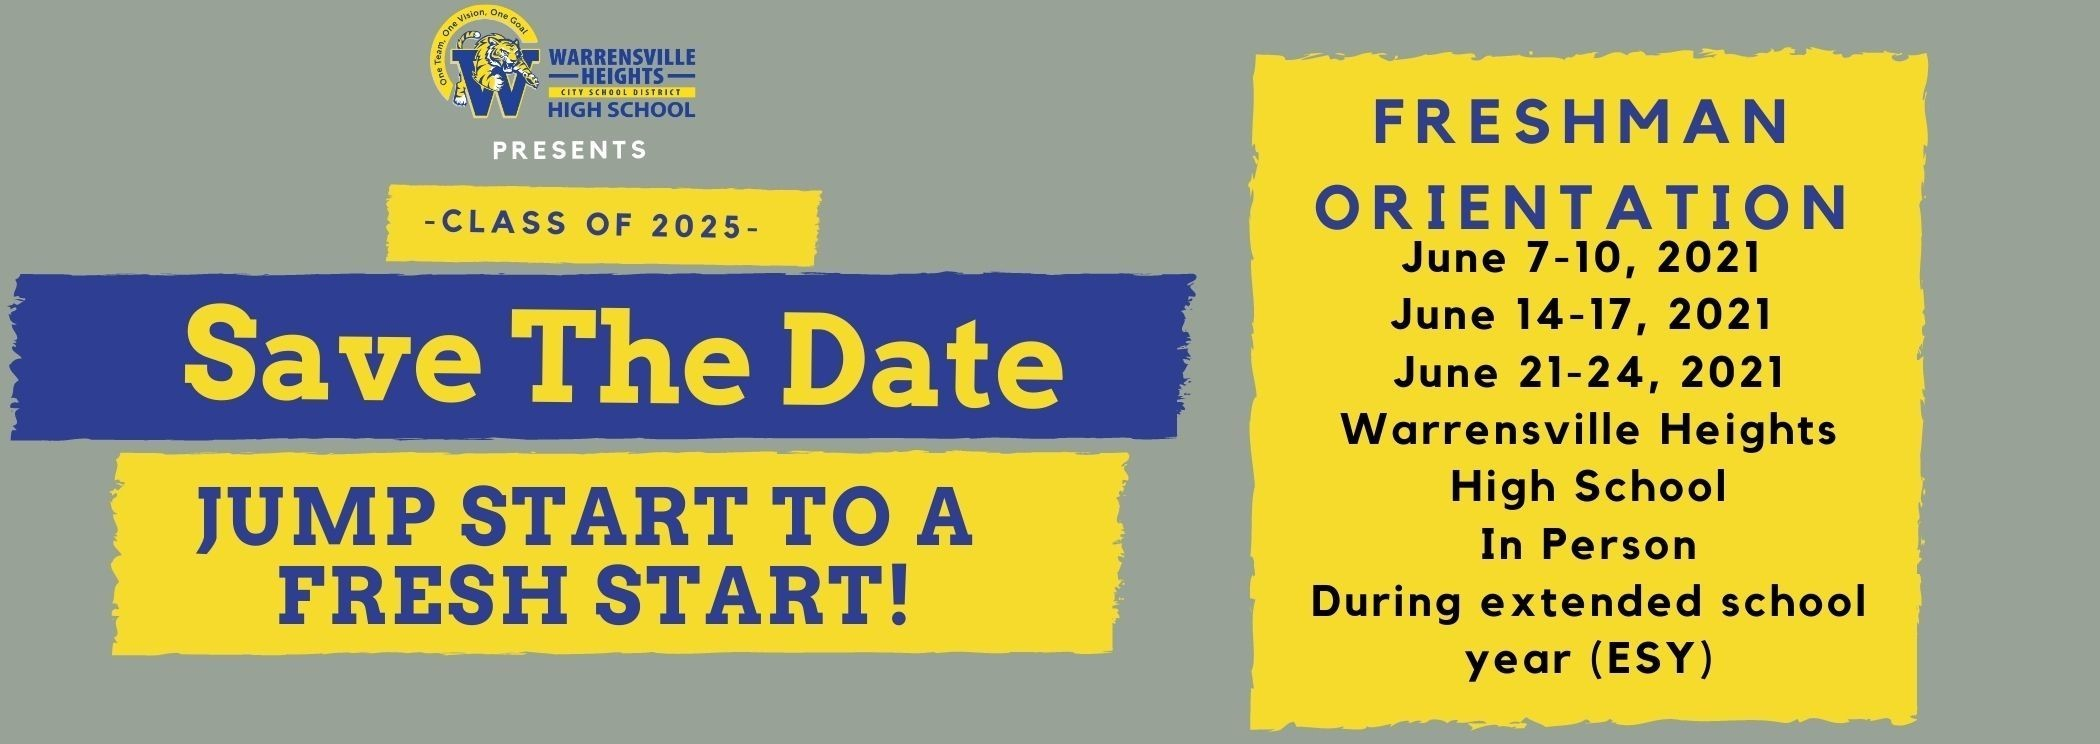 Freshman Orientation is right around the corner Tigers. The orientation will be held during our extended school year. Don't forget to Save the Date.